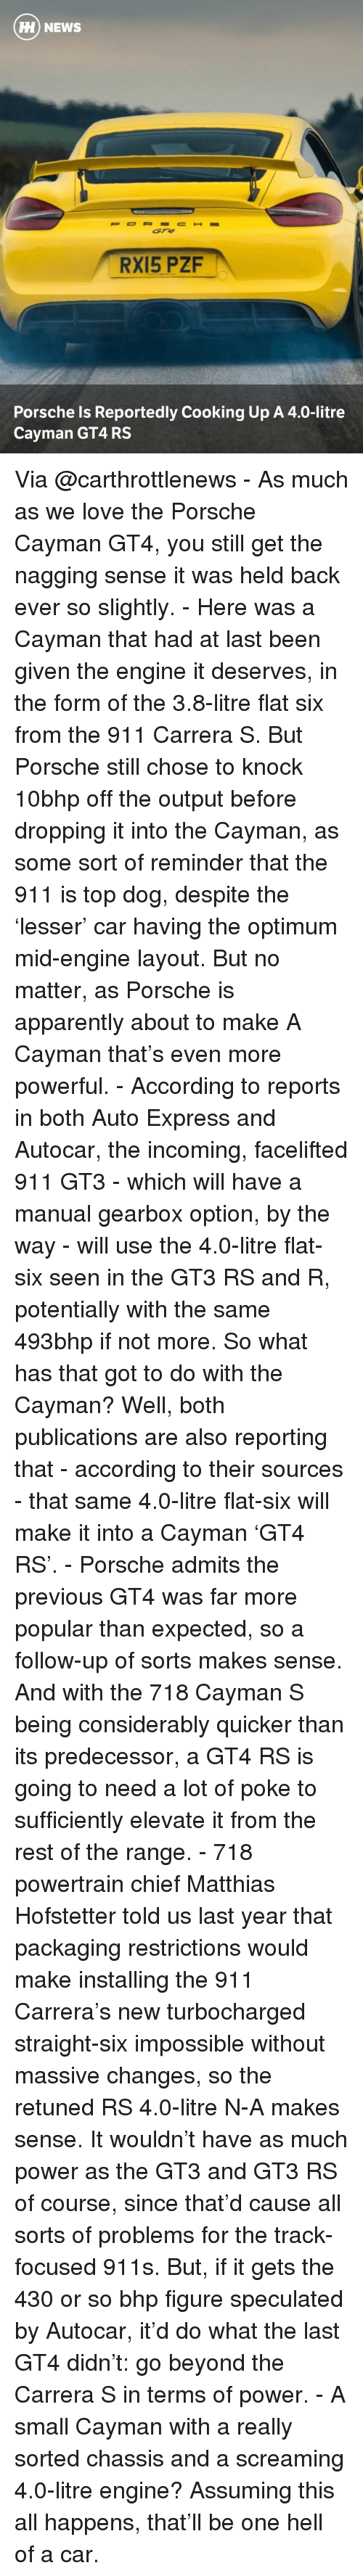 gearbox: HH NEWS  RX15 PZF  Porsche Is Reportedly Cooking Up A 4.0-litre  Cayman GT4 RS Via @carthrottlenews - As much as we love the Porsche Cayman GT4, you still get the nagging sense it was held back ever so slightly. - Here was a Cayman that had at last been given the engine it deserves, in the form of the 3.8-litre flat six from the 911 Carrera S. But Porsche still chose to knock 10bhp off the output before dropping it into the Cayman, as some sort of reminder that the 911 is top dog, despite the 'lesser' car having the optimum mid-engine layout. But no matter, as Porsche is apparently about to make A Cayman that's even more powerful. - According to reports in both Auto Express and Autocar, the incoming, facelifted 911 GT3 - which will have a manual gearbox option, by the way - will use the 4.0-litre flat-six seen in the GT3 RS and R, potentially with the same 493bhp if not more. So what has that got to do with the Cayman? Well, both publications are also reporting that - according to their sources - that same 4.0-litre flat-six will make it into a Cayman 'GT4 RS'. - Porsche admits the previous GT4 was far more popular than expected, so a follow-up of sorts makes sense. And with the 718 Cayman S being considerably quicker than its predecessor, a GT4 RS is going to need a lot of poke to sufficiently elevate it from the rest of the range. - 718 powertrain chief Matthias Hofstetter told us last year that packaging restrictions would make installing the 911 Carrera's new turbocharged straight-six impossible without massive changes, so the retuned RS 4.0-litre N-A makes sense. It wouldn't have as much power as the GT3 and GT3 RS of course, since that'd cause all sorts of problems for the track-focused 911s. But, if it gets the 430 or so bhp figure speculated by Autocar, it'd do what the last GT4 didn't: go beyond the Carrera S in terms of power. - A small Cayman with a really sorted chassis and a screaming 4.0-litre engine? Assuming this all happens, that'll be one 